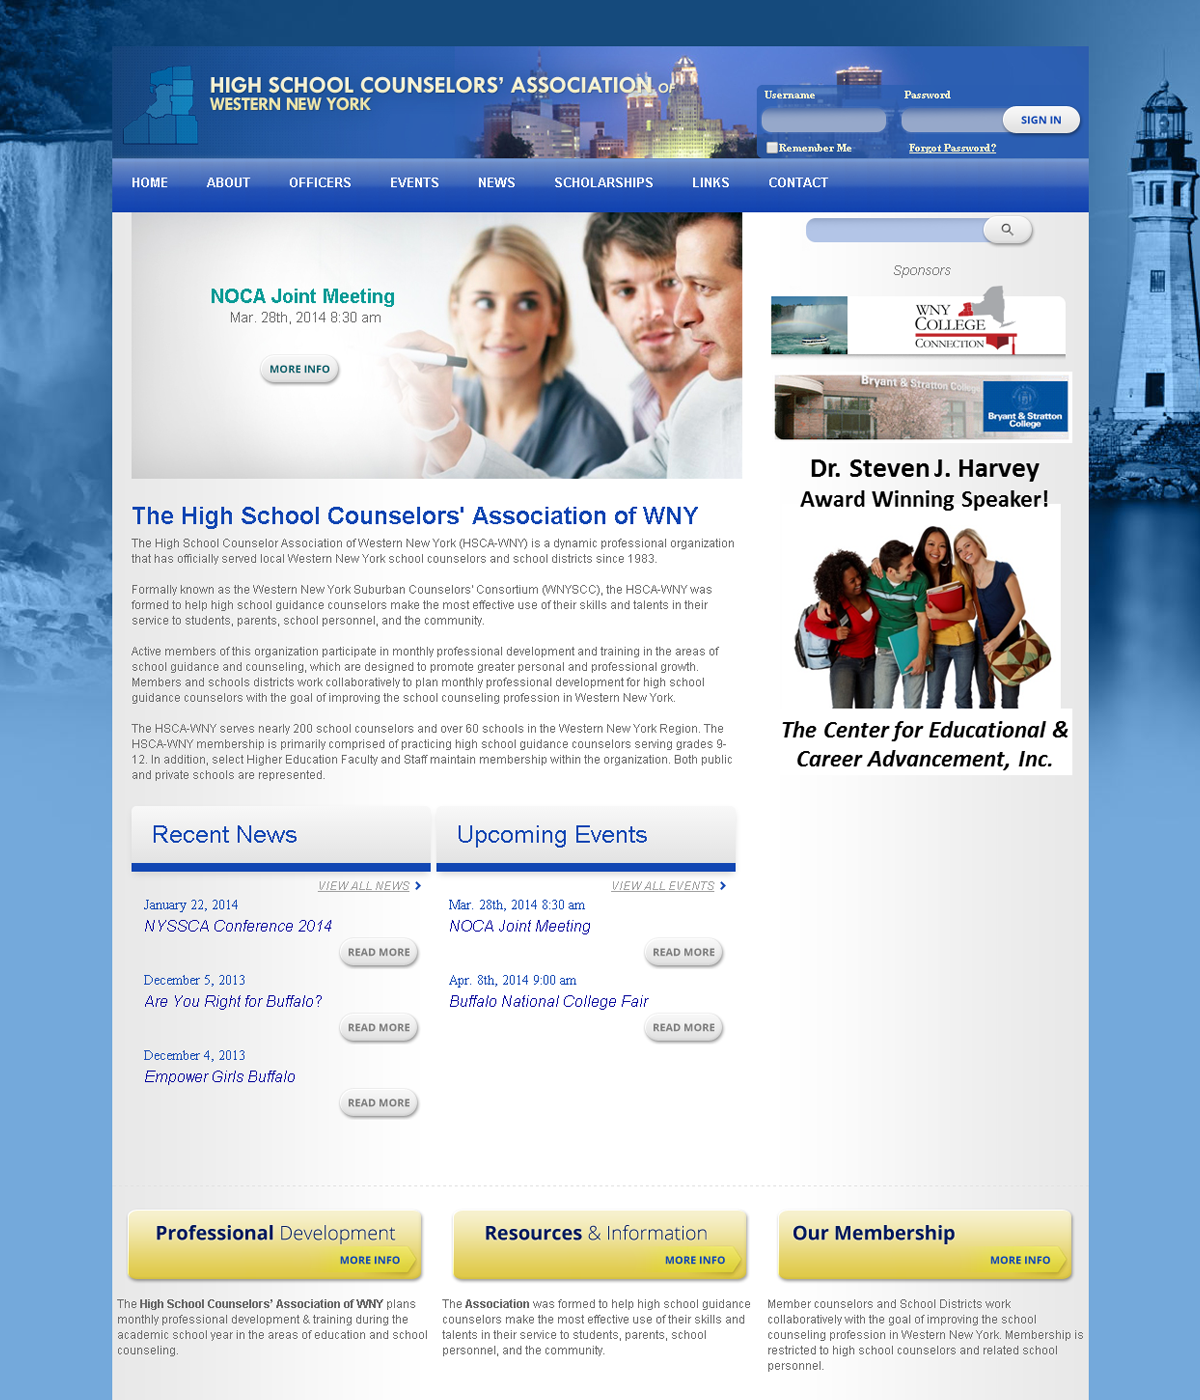 High School Counselors' Association of WNY